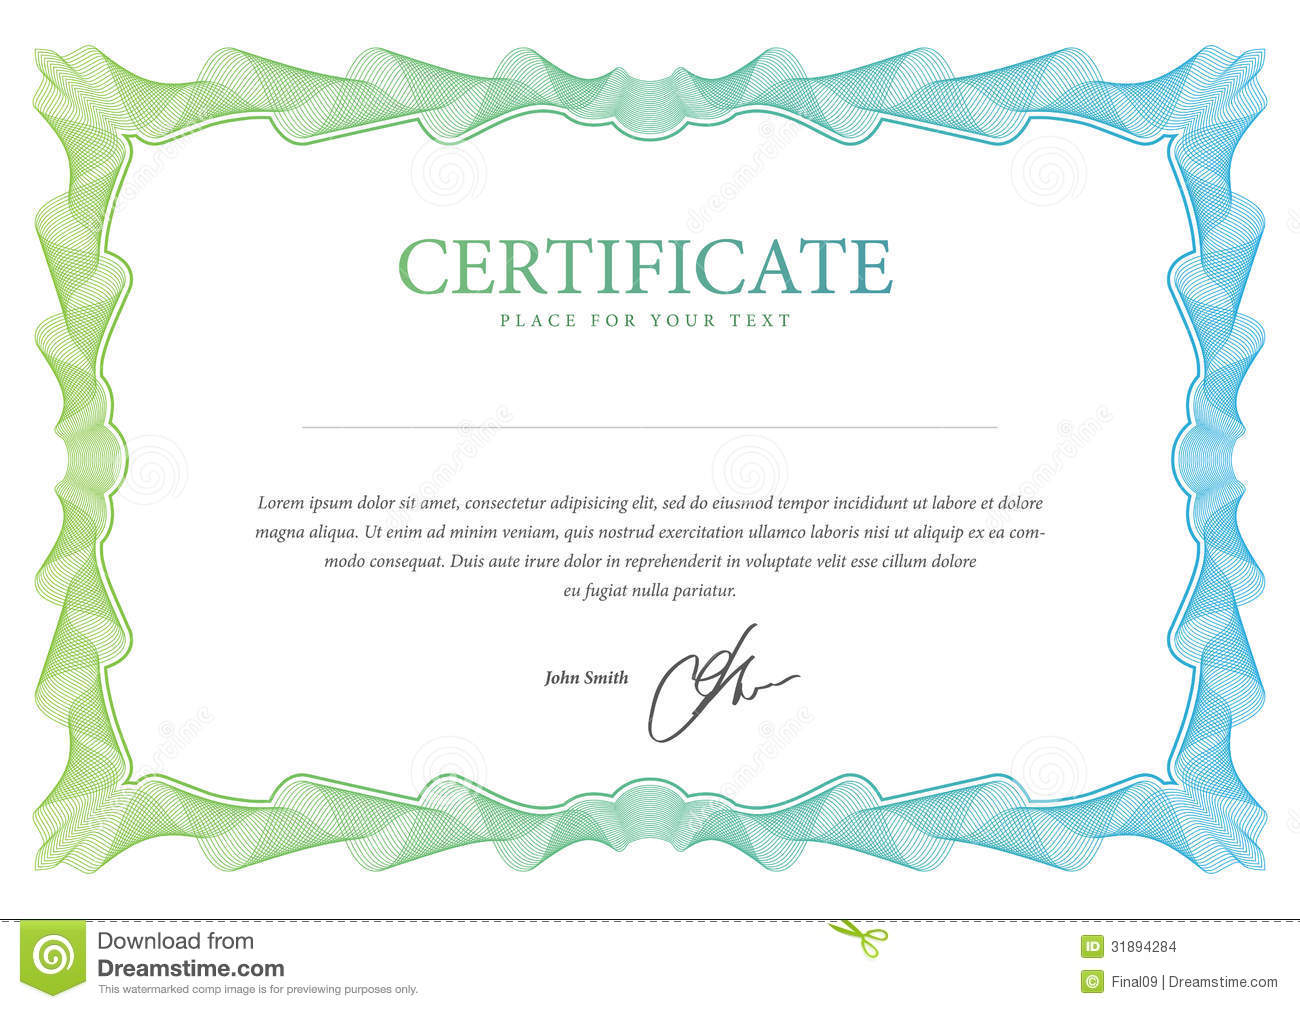 certificate diploma award template grunge patte royalty certificate vector template stock images